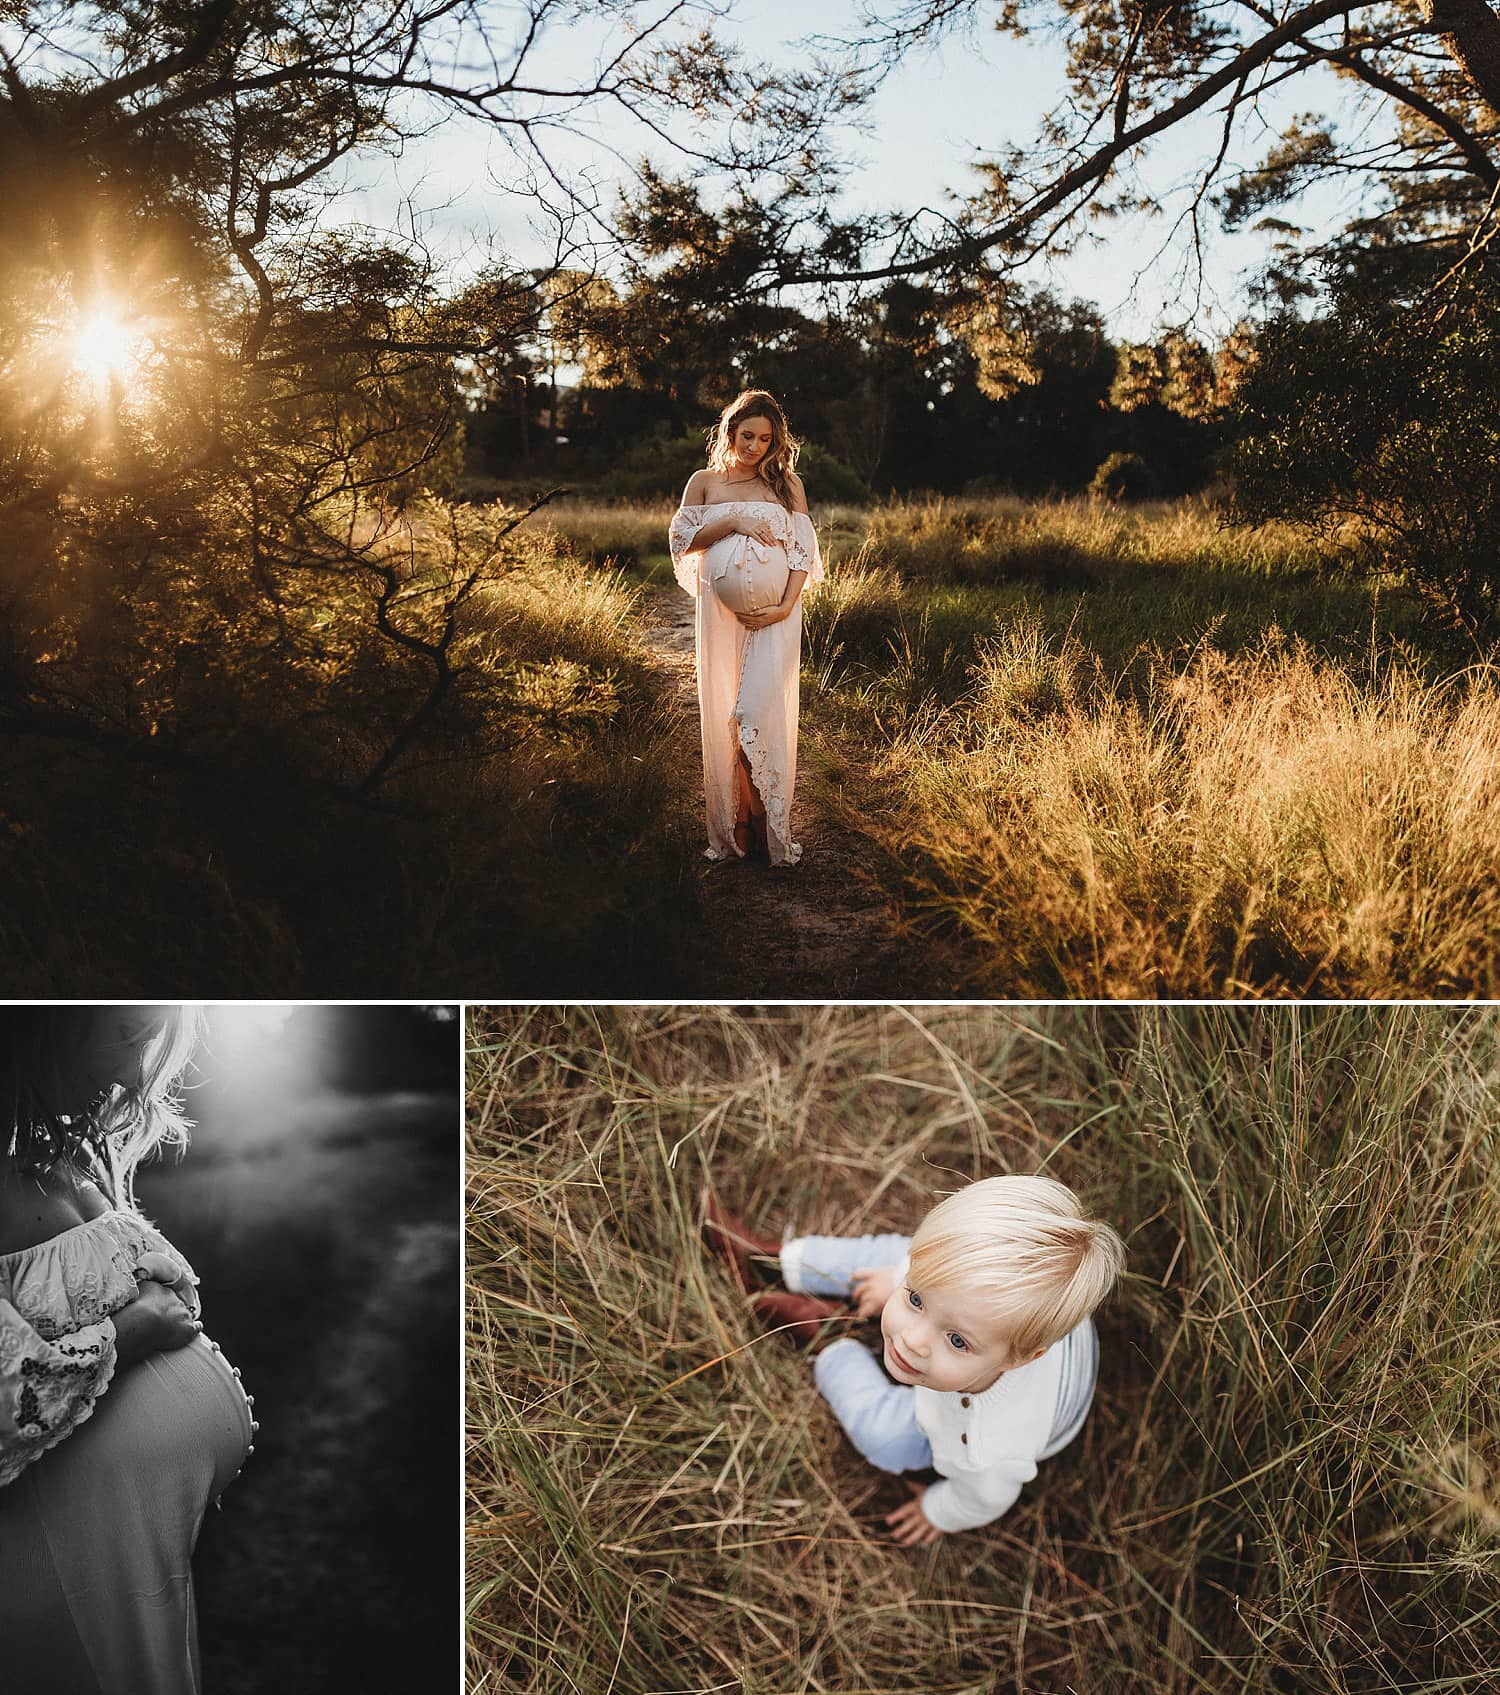 Sydney-Lifestyle-Maternity-Photographer-Sutherland-Shire-Wollongong